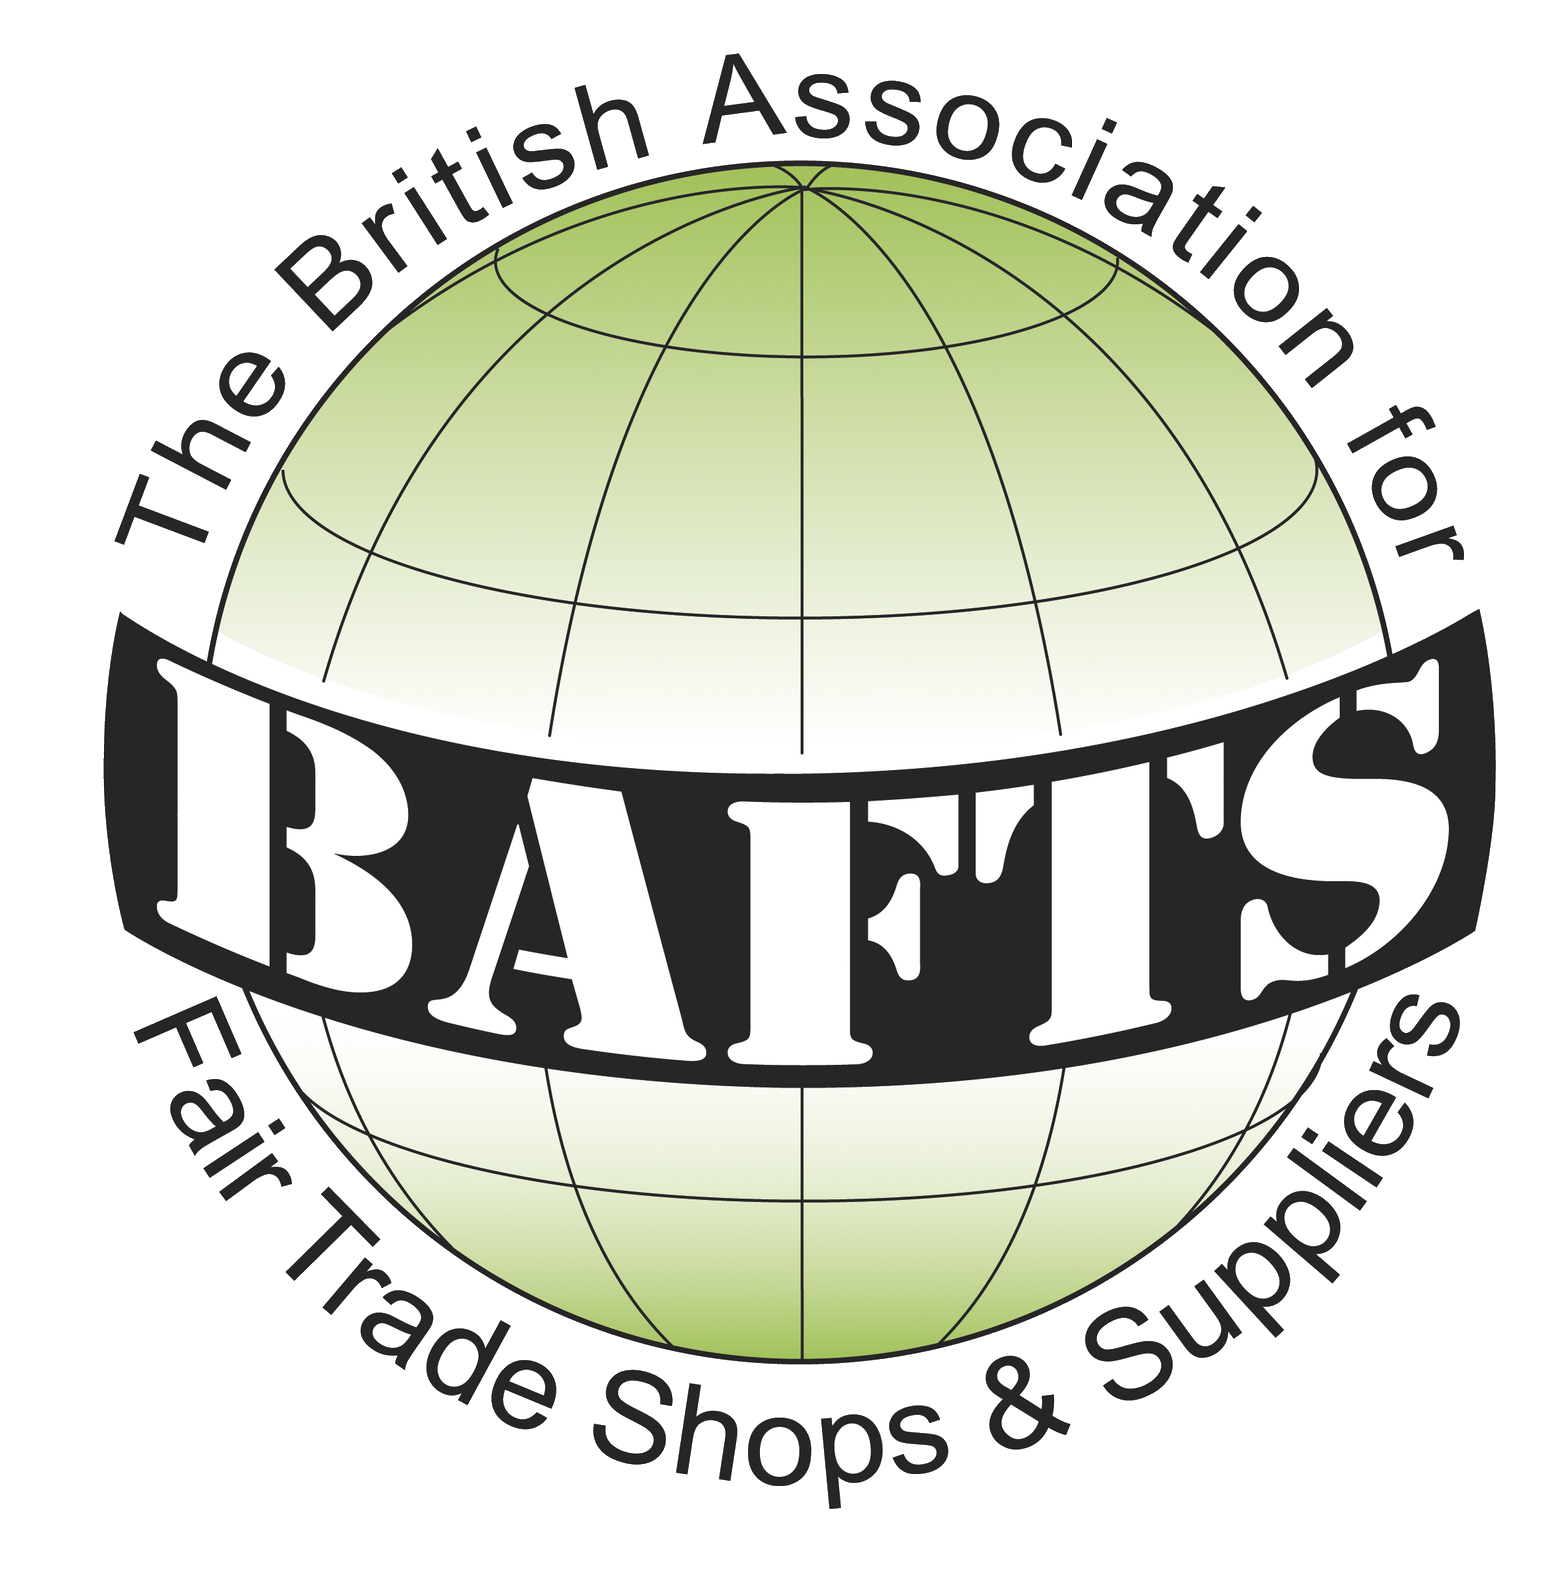 BAFTS_transparent_logo.png